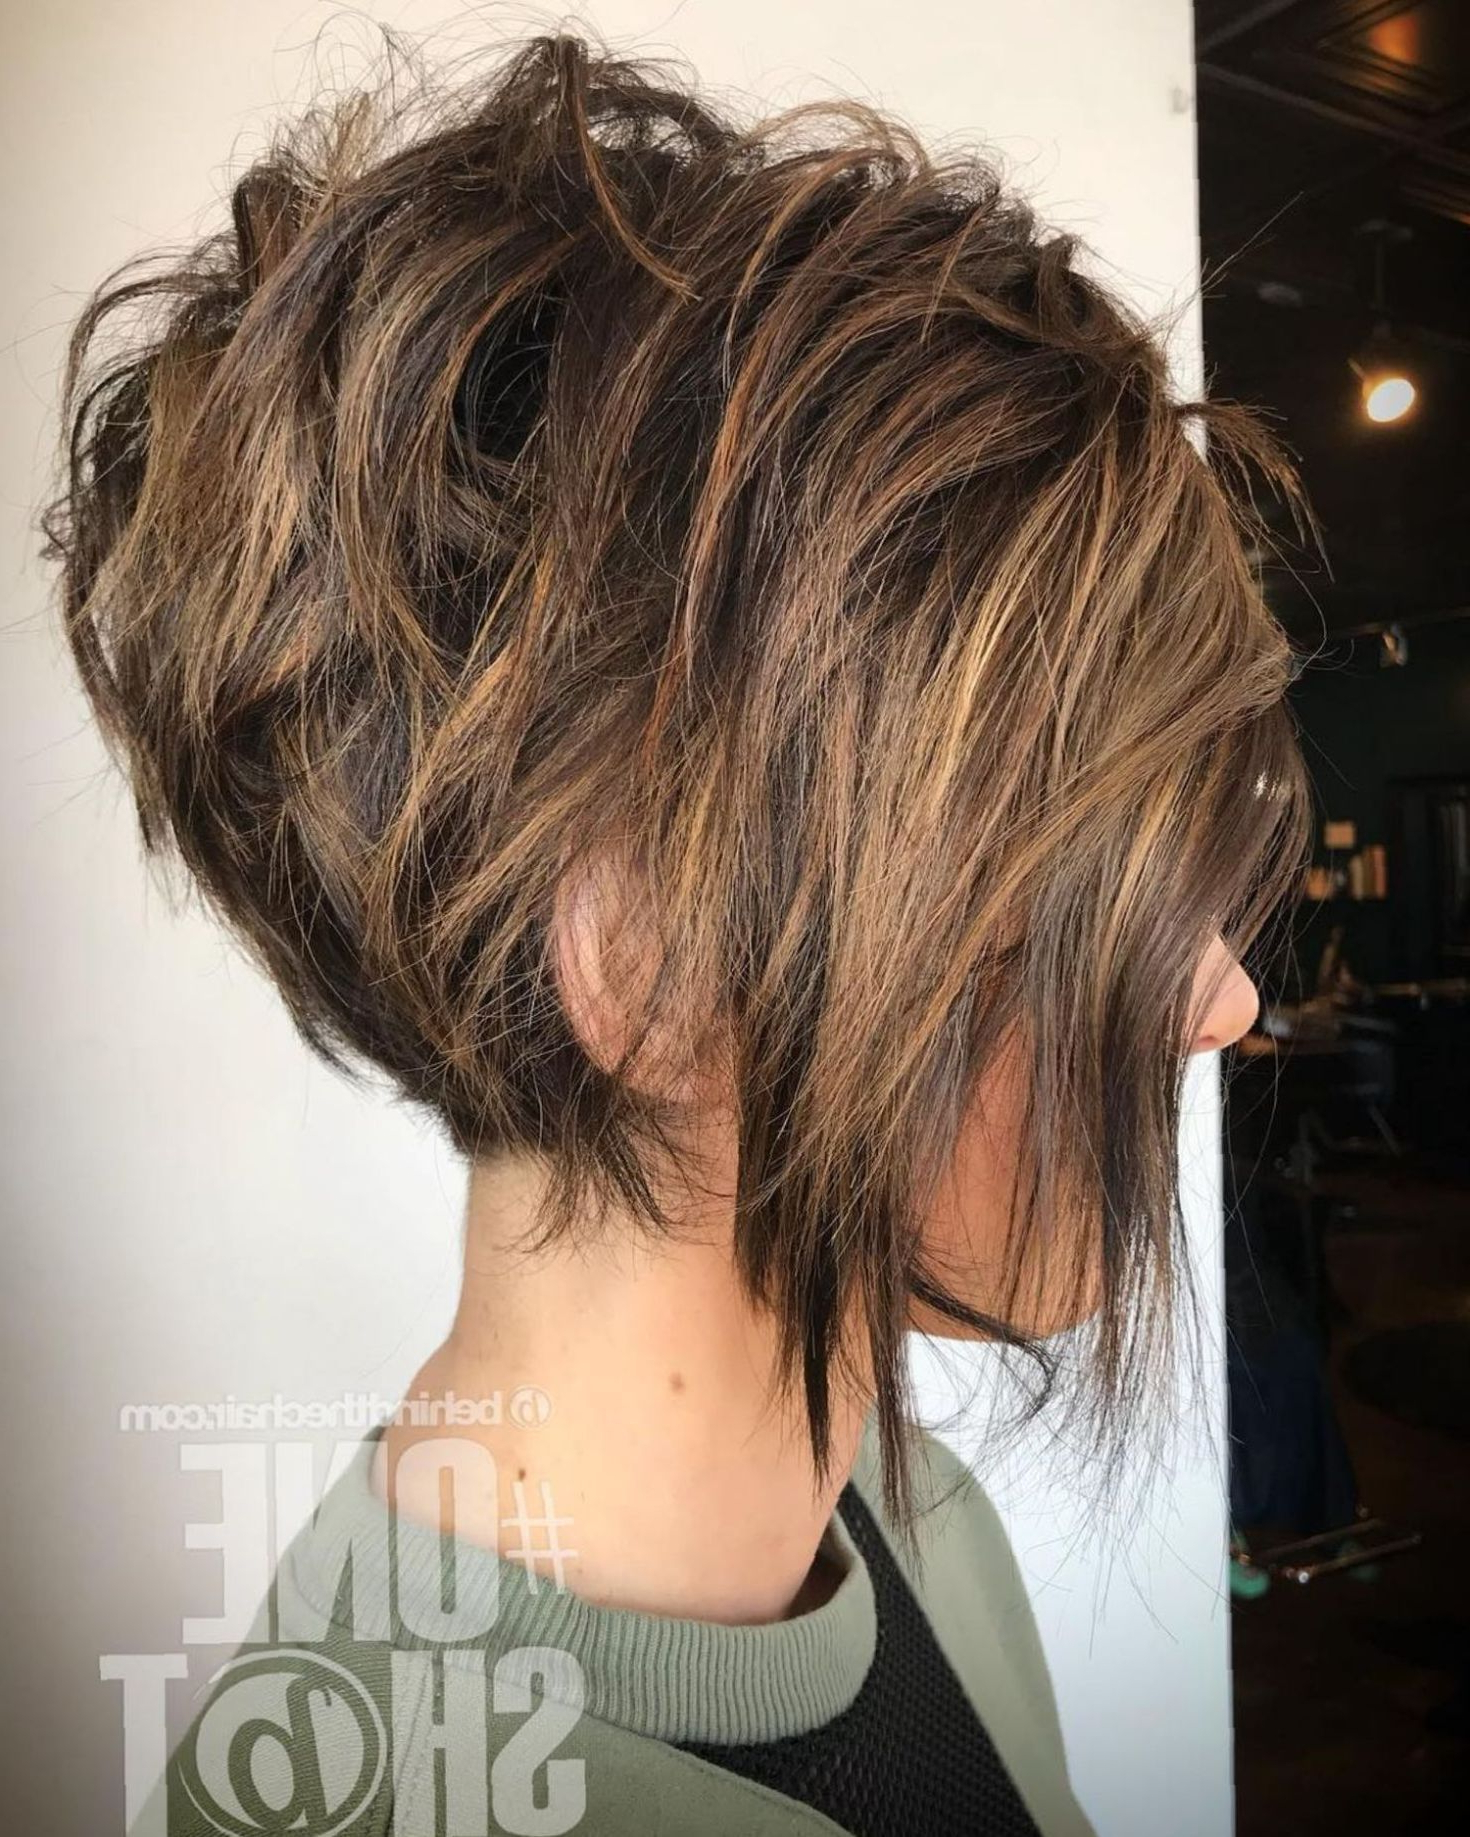 2017 Brunette Messy Shag Hairstyles Regarding 60 Short Shag Hairstyles That You Simply Can't Miss (View 1 of 20)